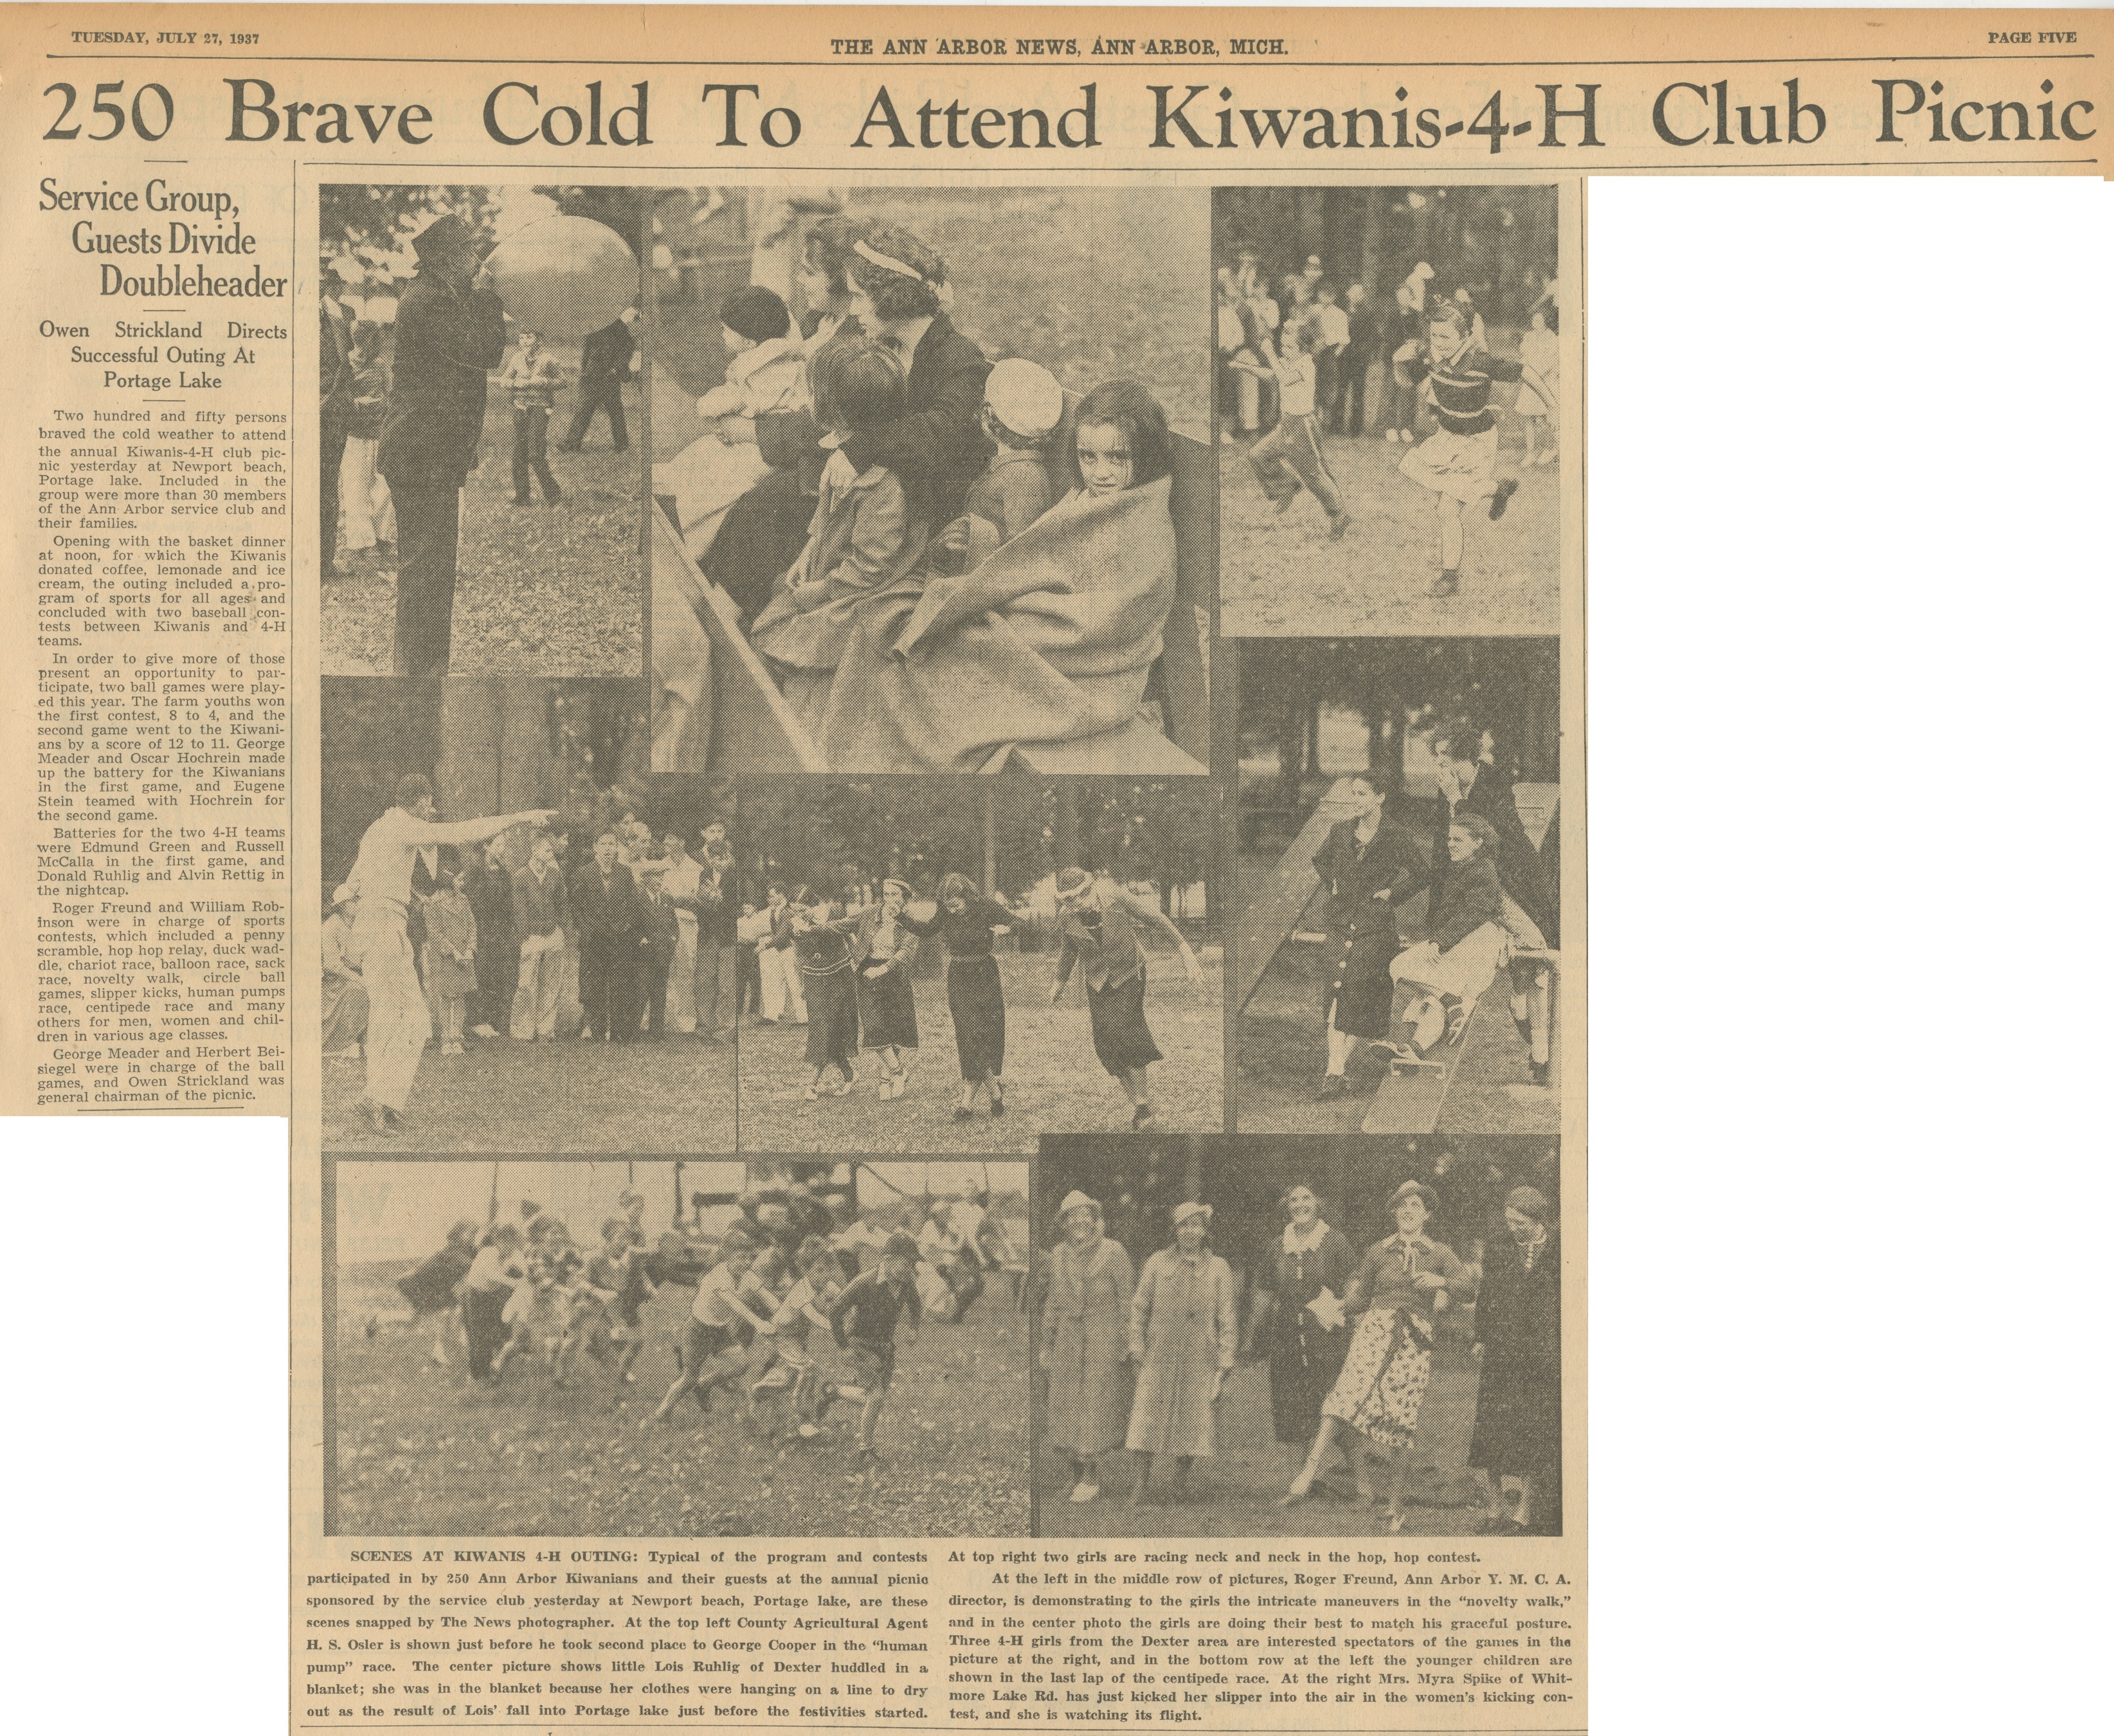 250 Brave Cold To Attend Kiwanis - 4-H Club Picnic image